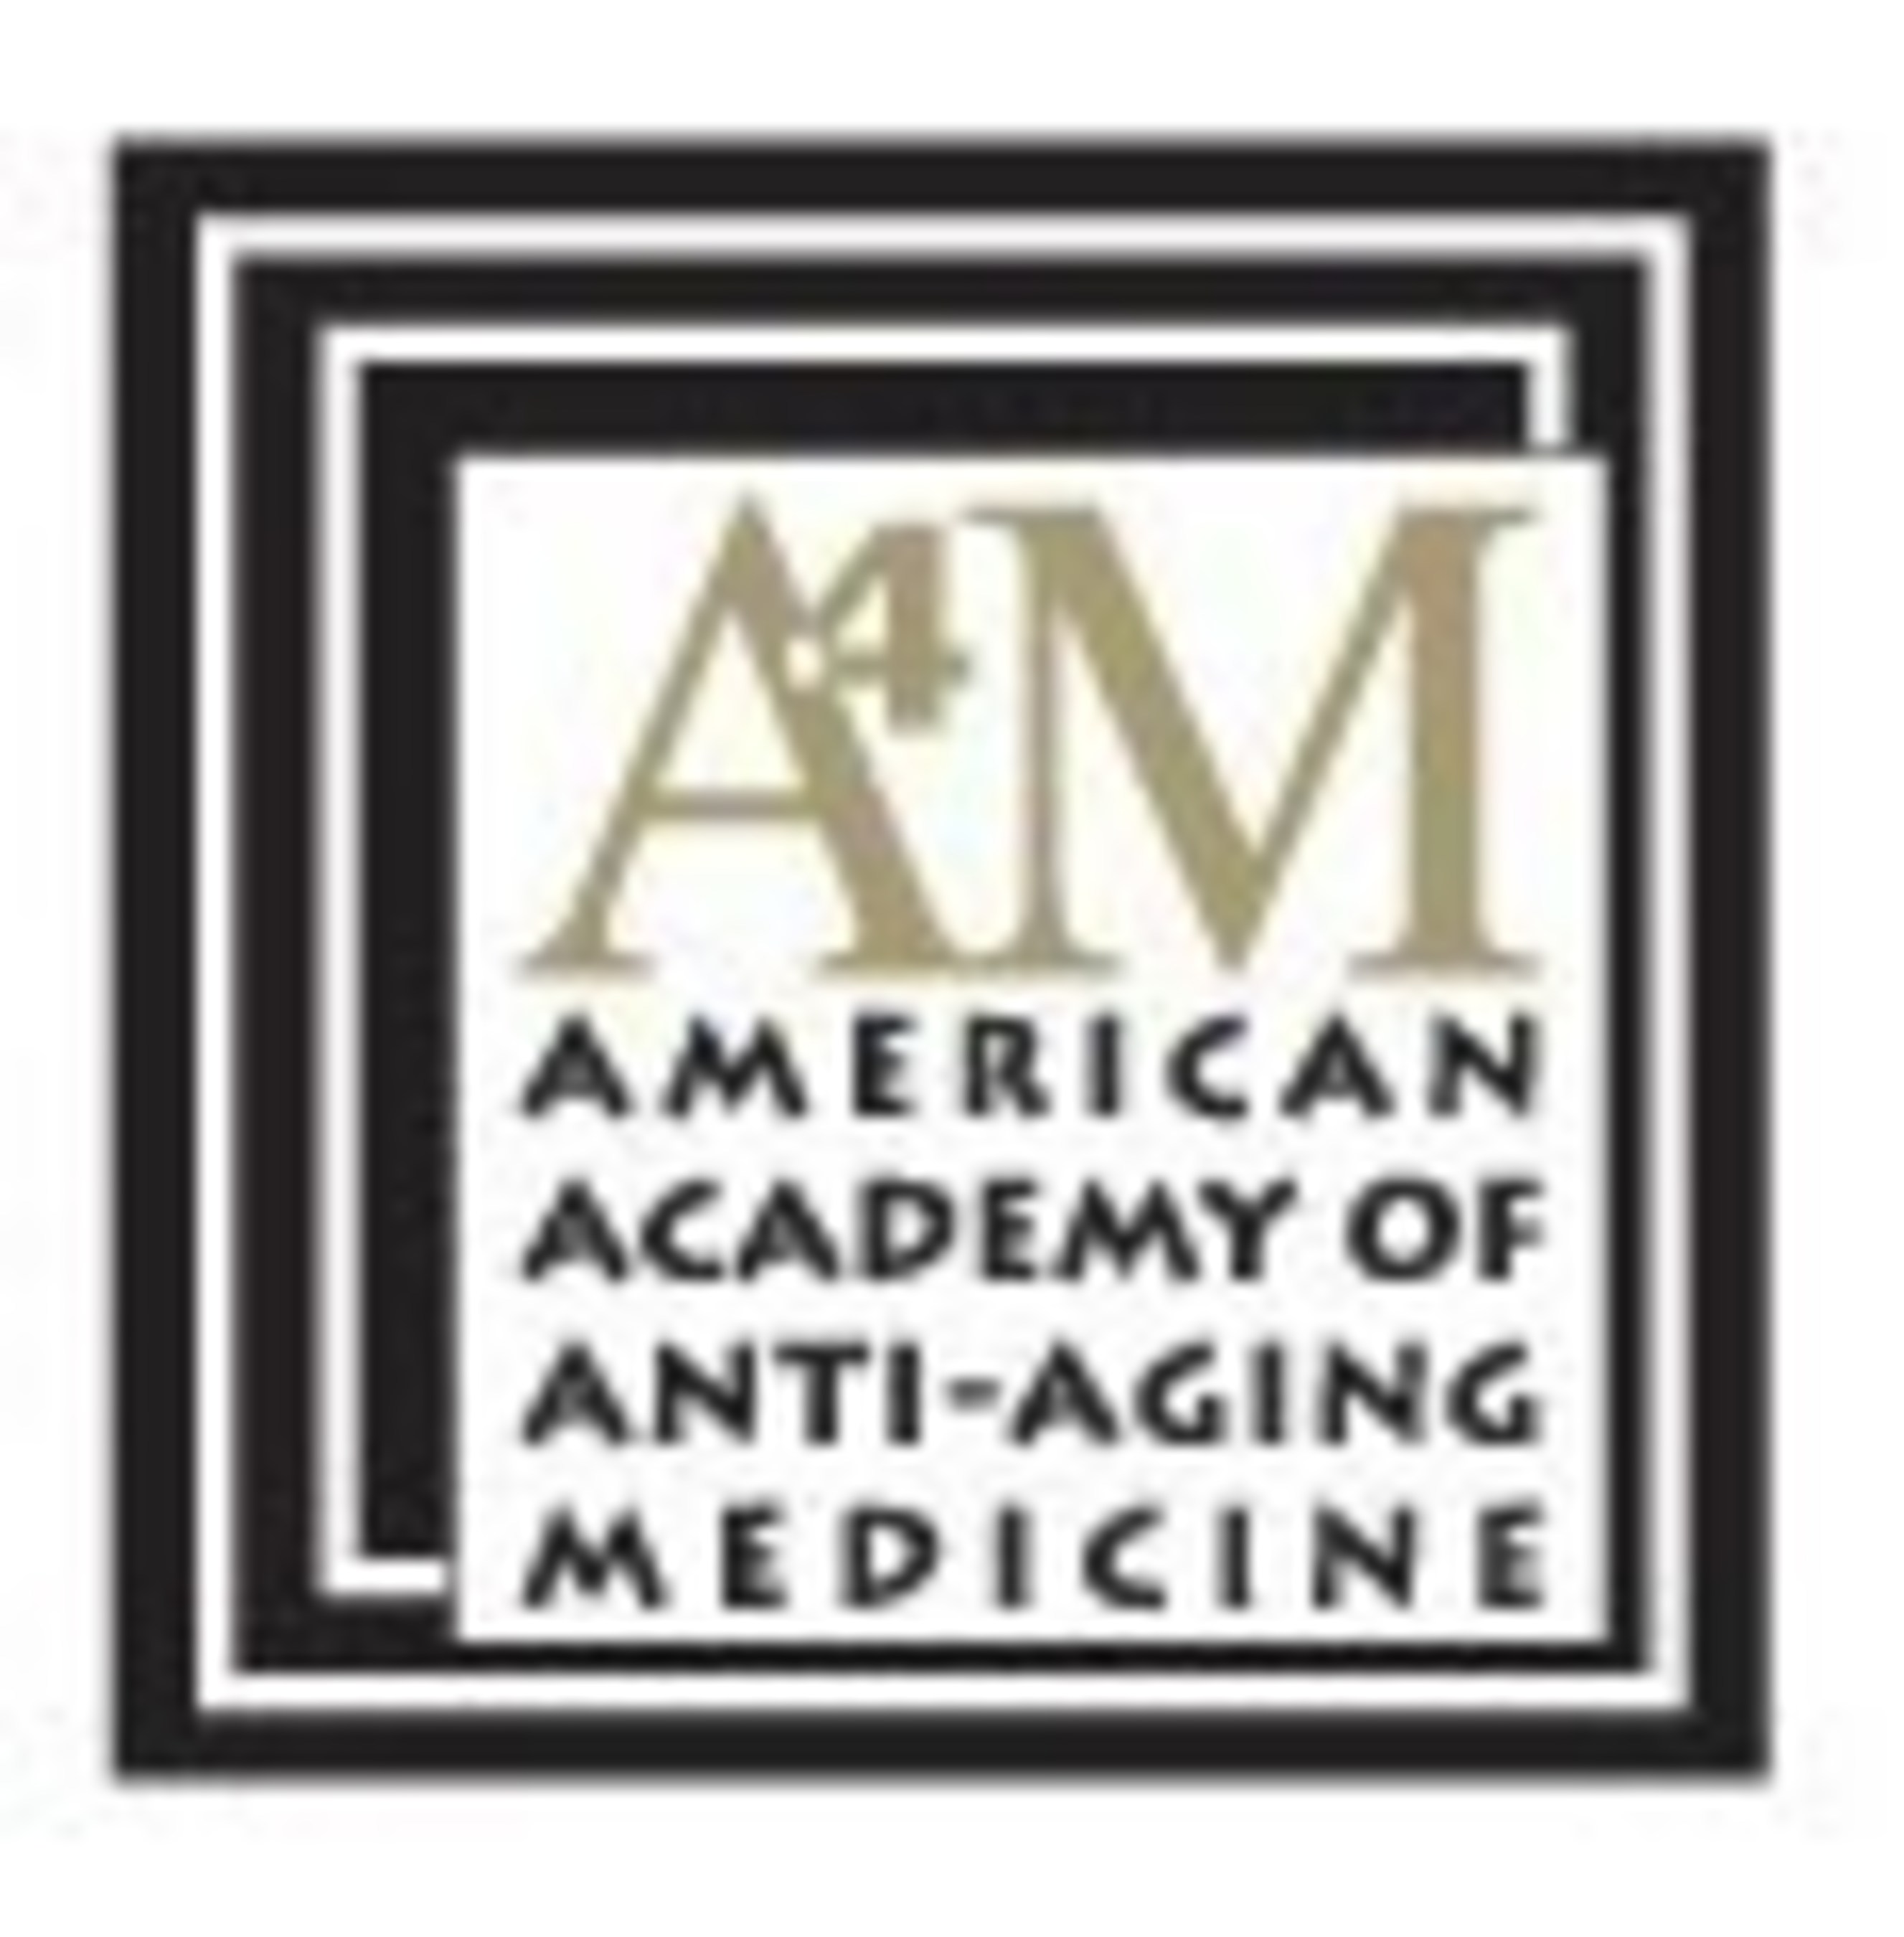 Incredible Advances in Anti-Aging Medicine Revealed at 23rd Annual American Academy of Anti-Aging